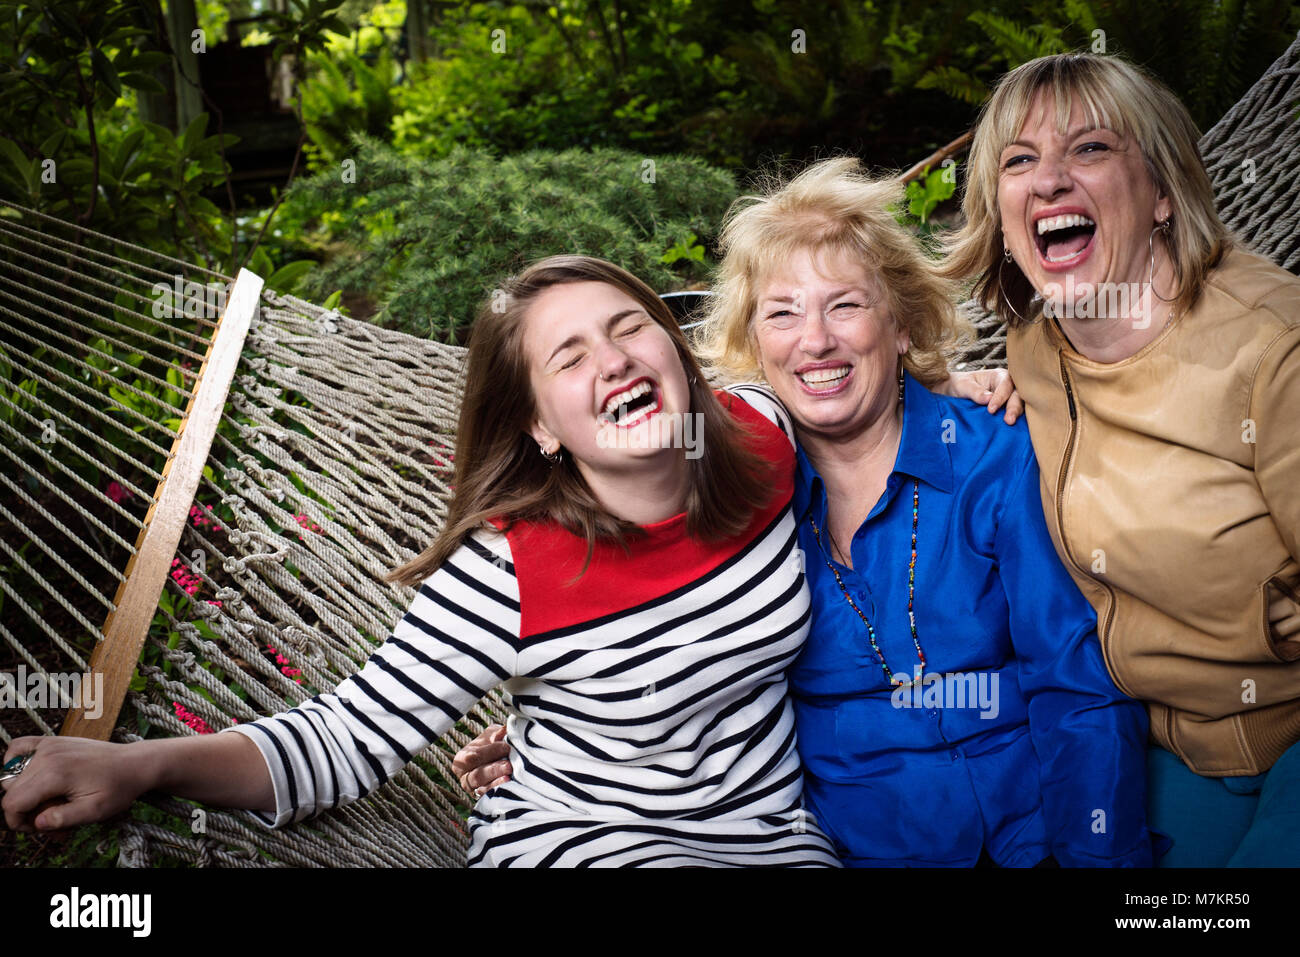 Three generations of women sitting in a hammock enjoying each others company. - Stock Image